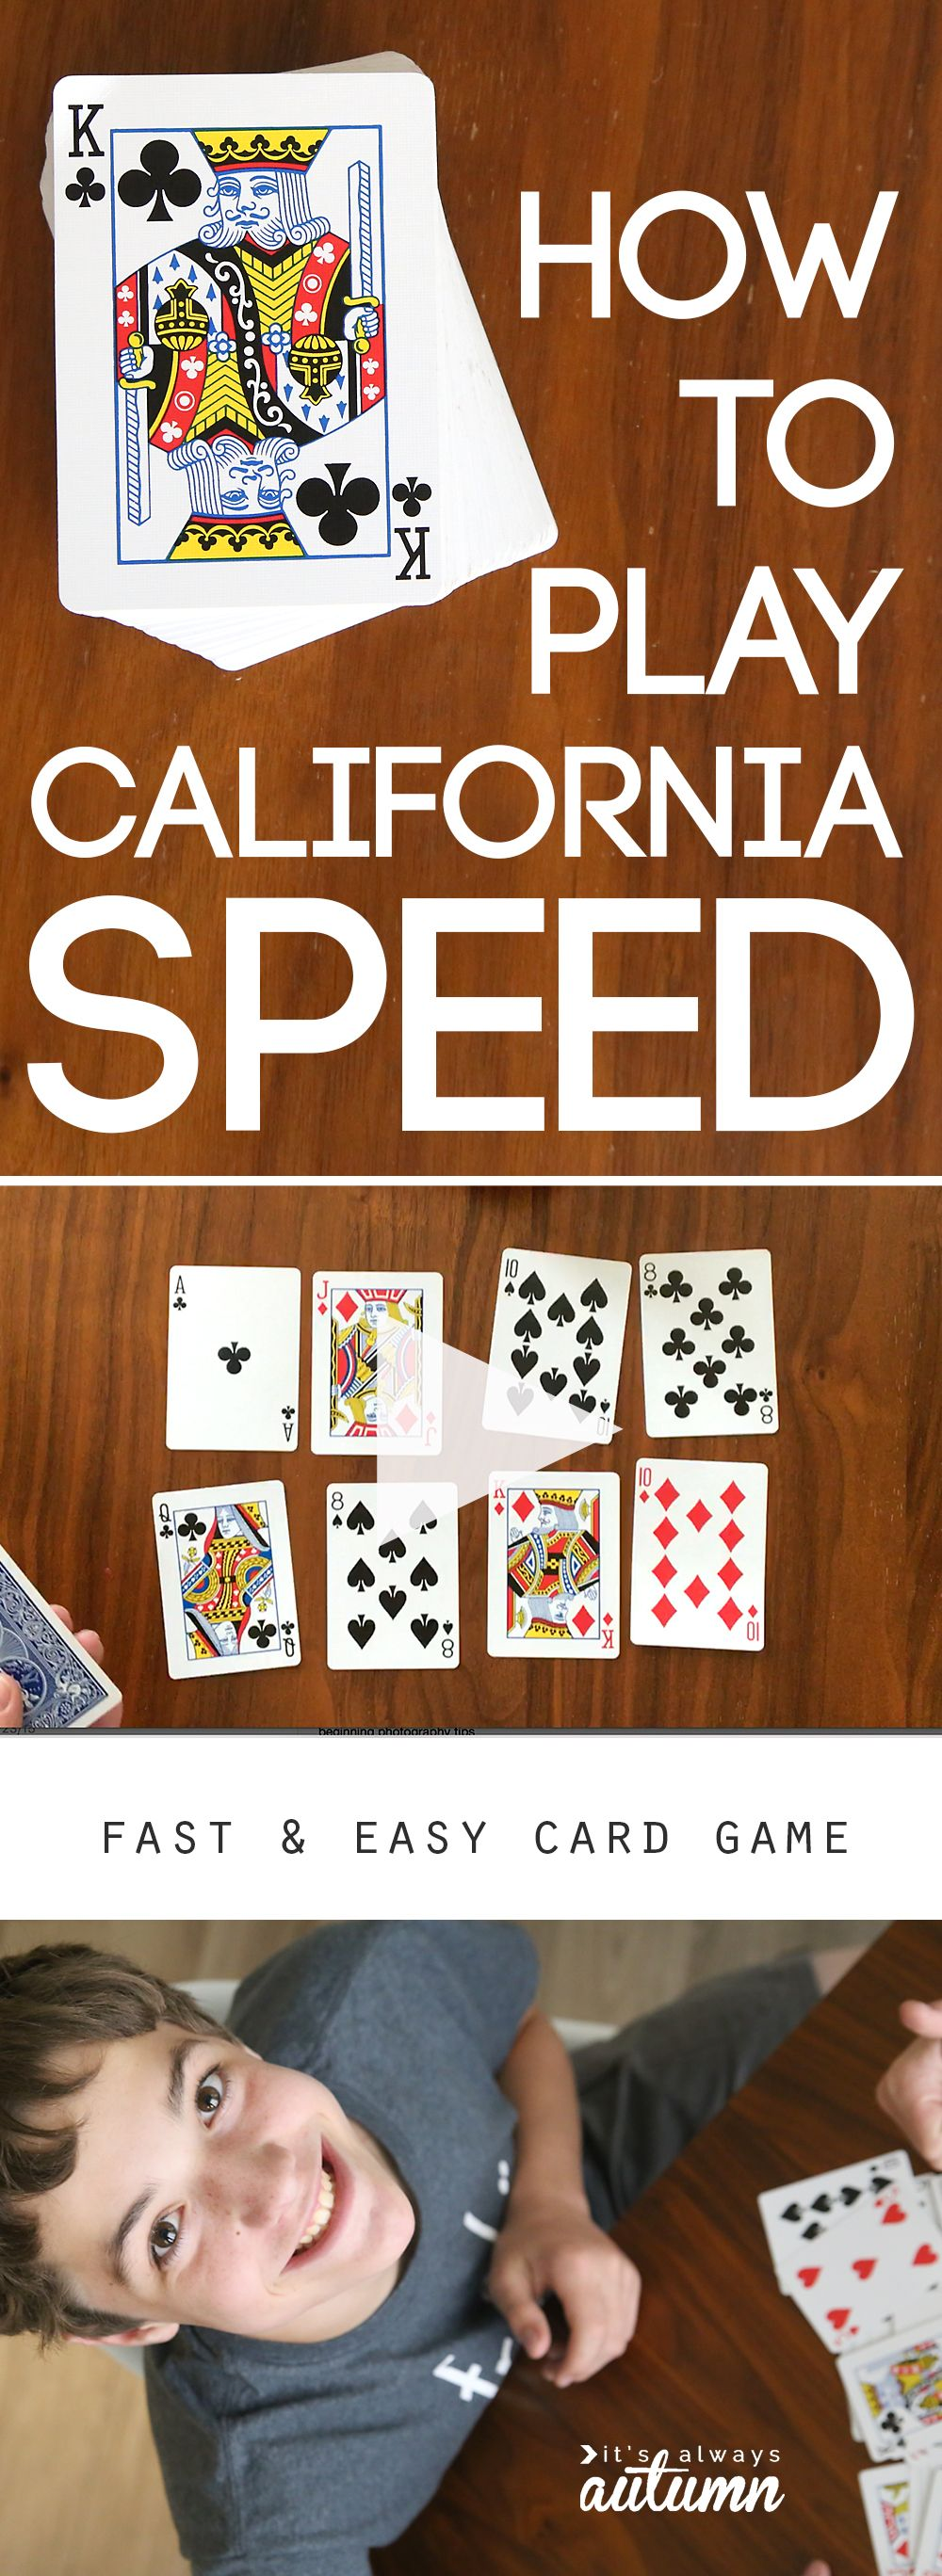 How To Play California Speed Easy Card Game It S Always Autumn Fun Card Games Card Games For Kids Family Card Games